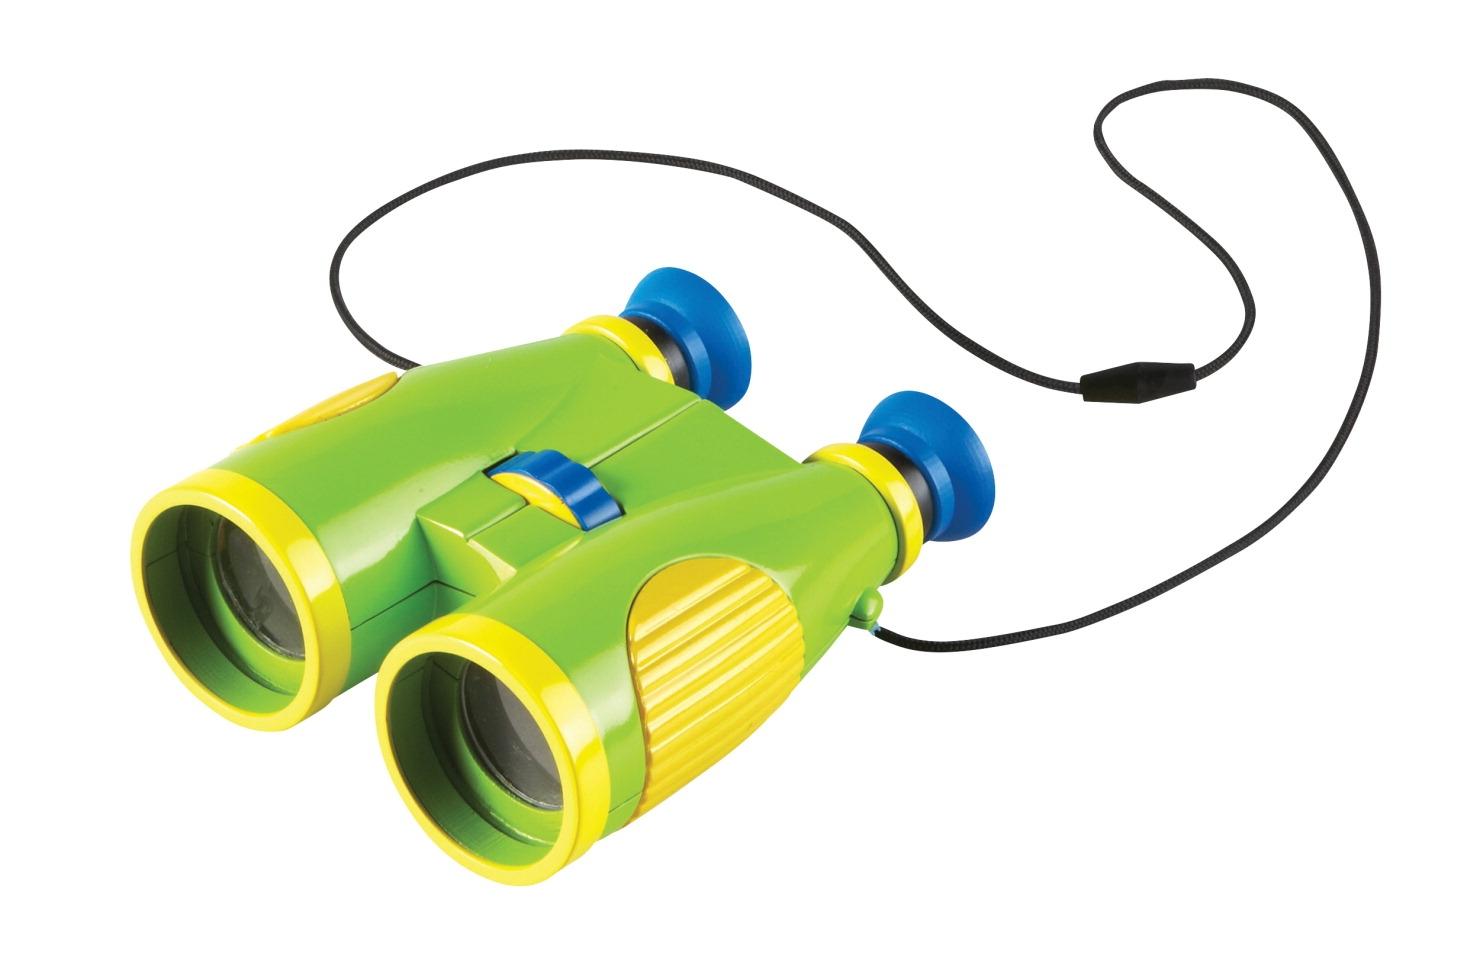 Learning Resources Primary Science Binoculars - 1499108 - Instructional Materials Resources Science Activities Equipment Physical Science Projects Books 1499108